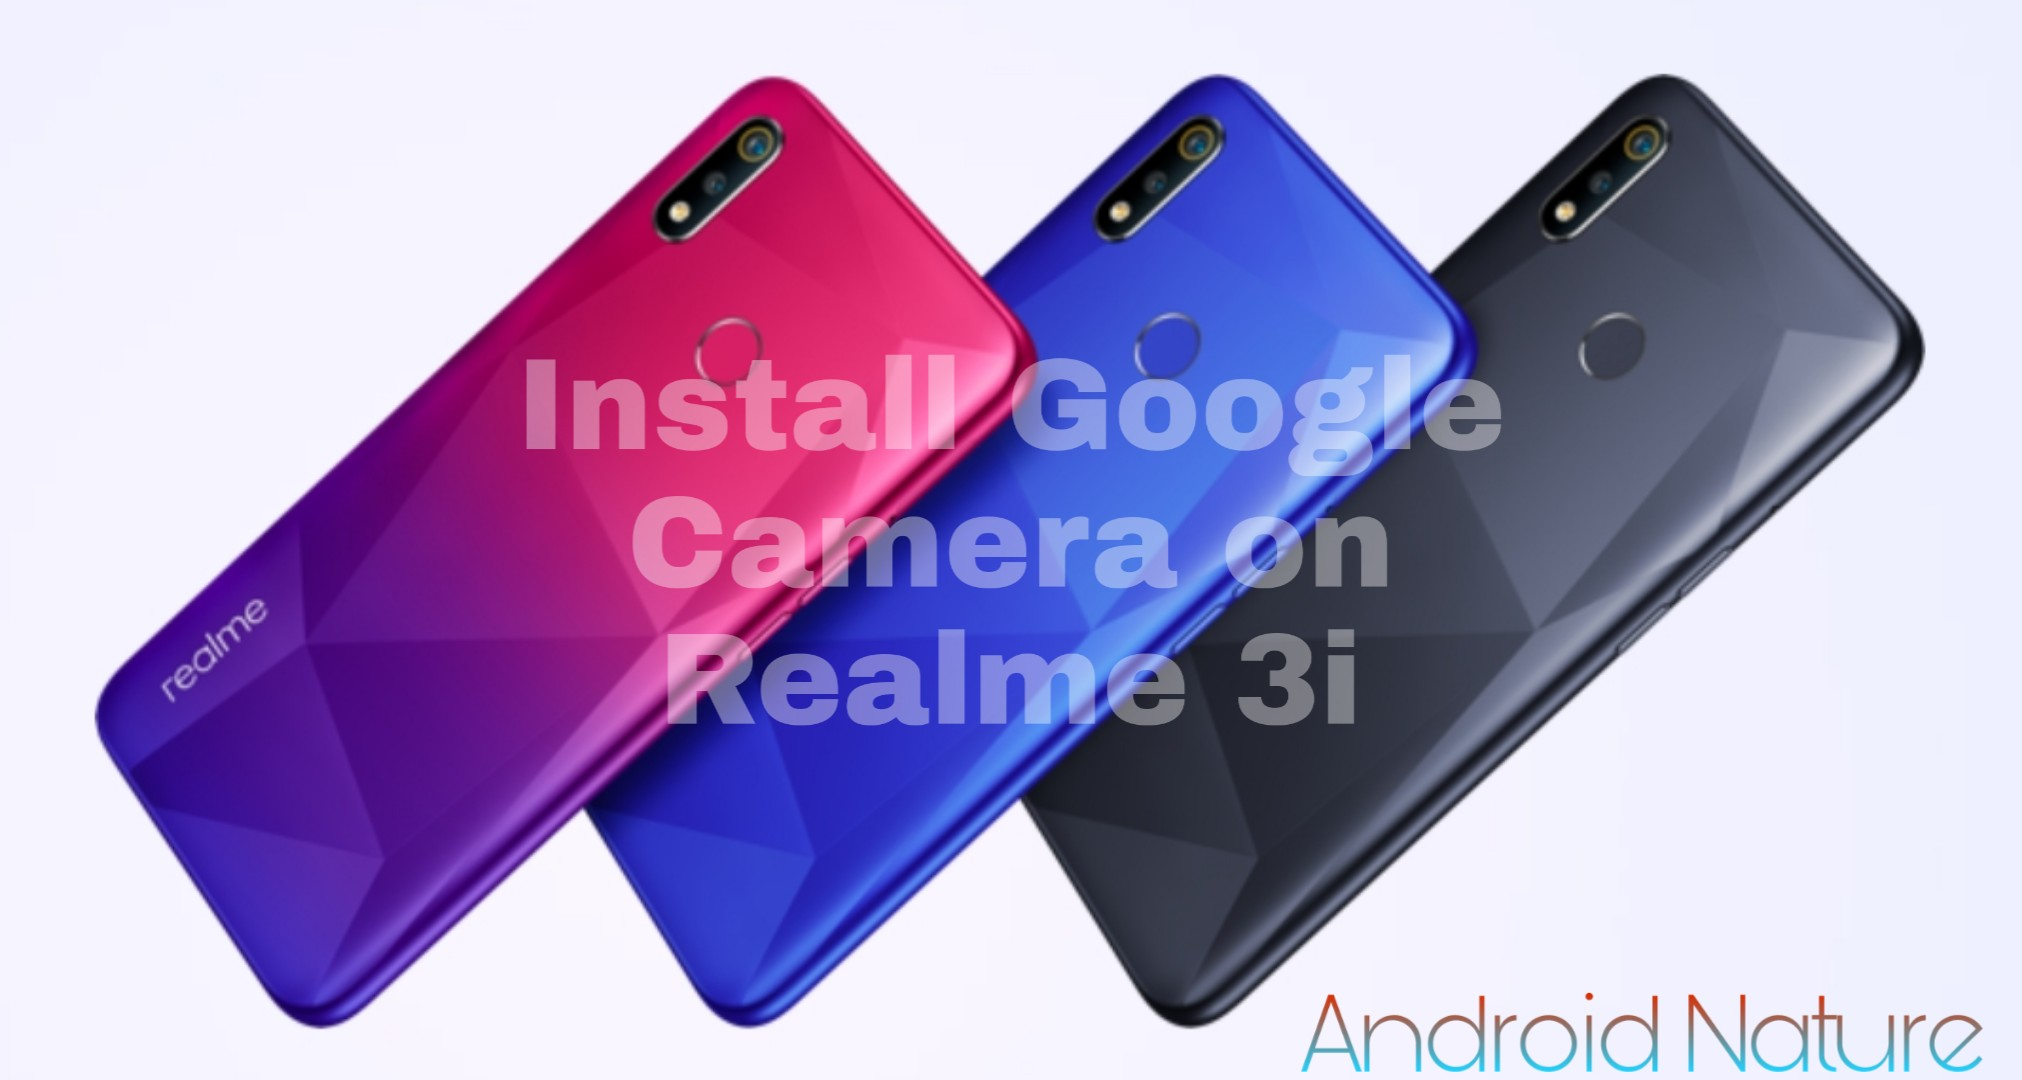 How to install Google Camera (Gcam) on Realme 3i - Android Nature